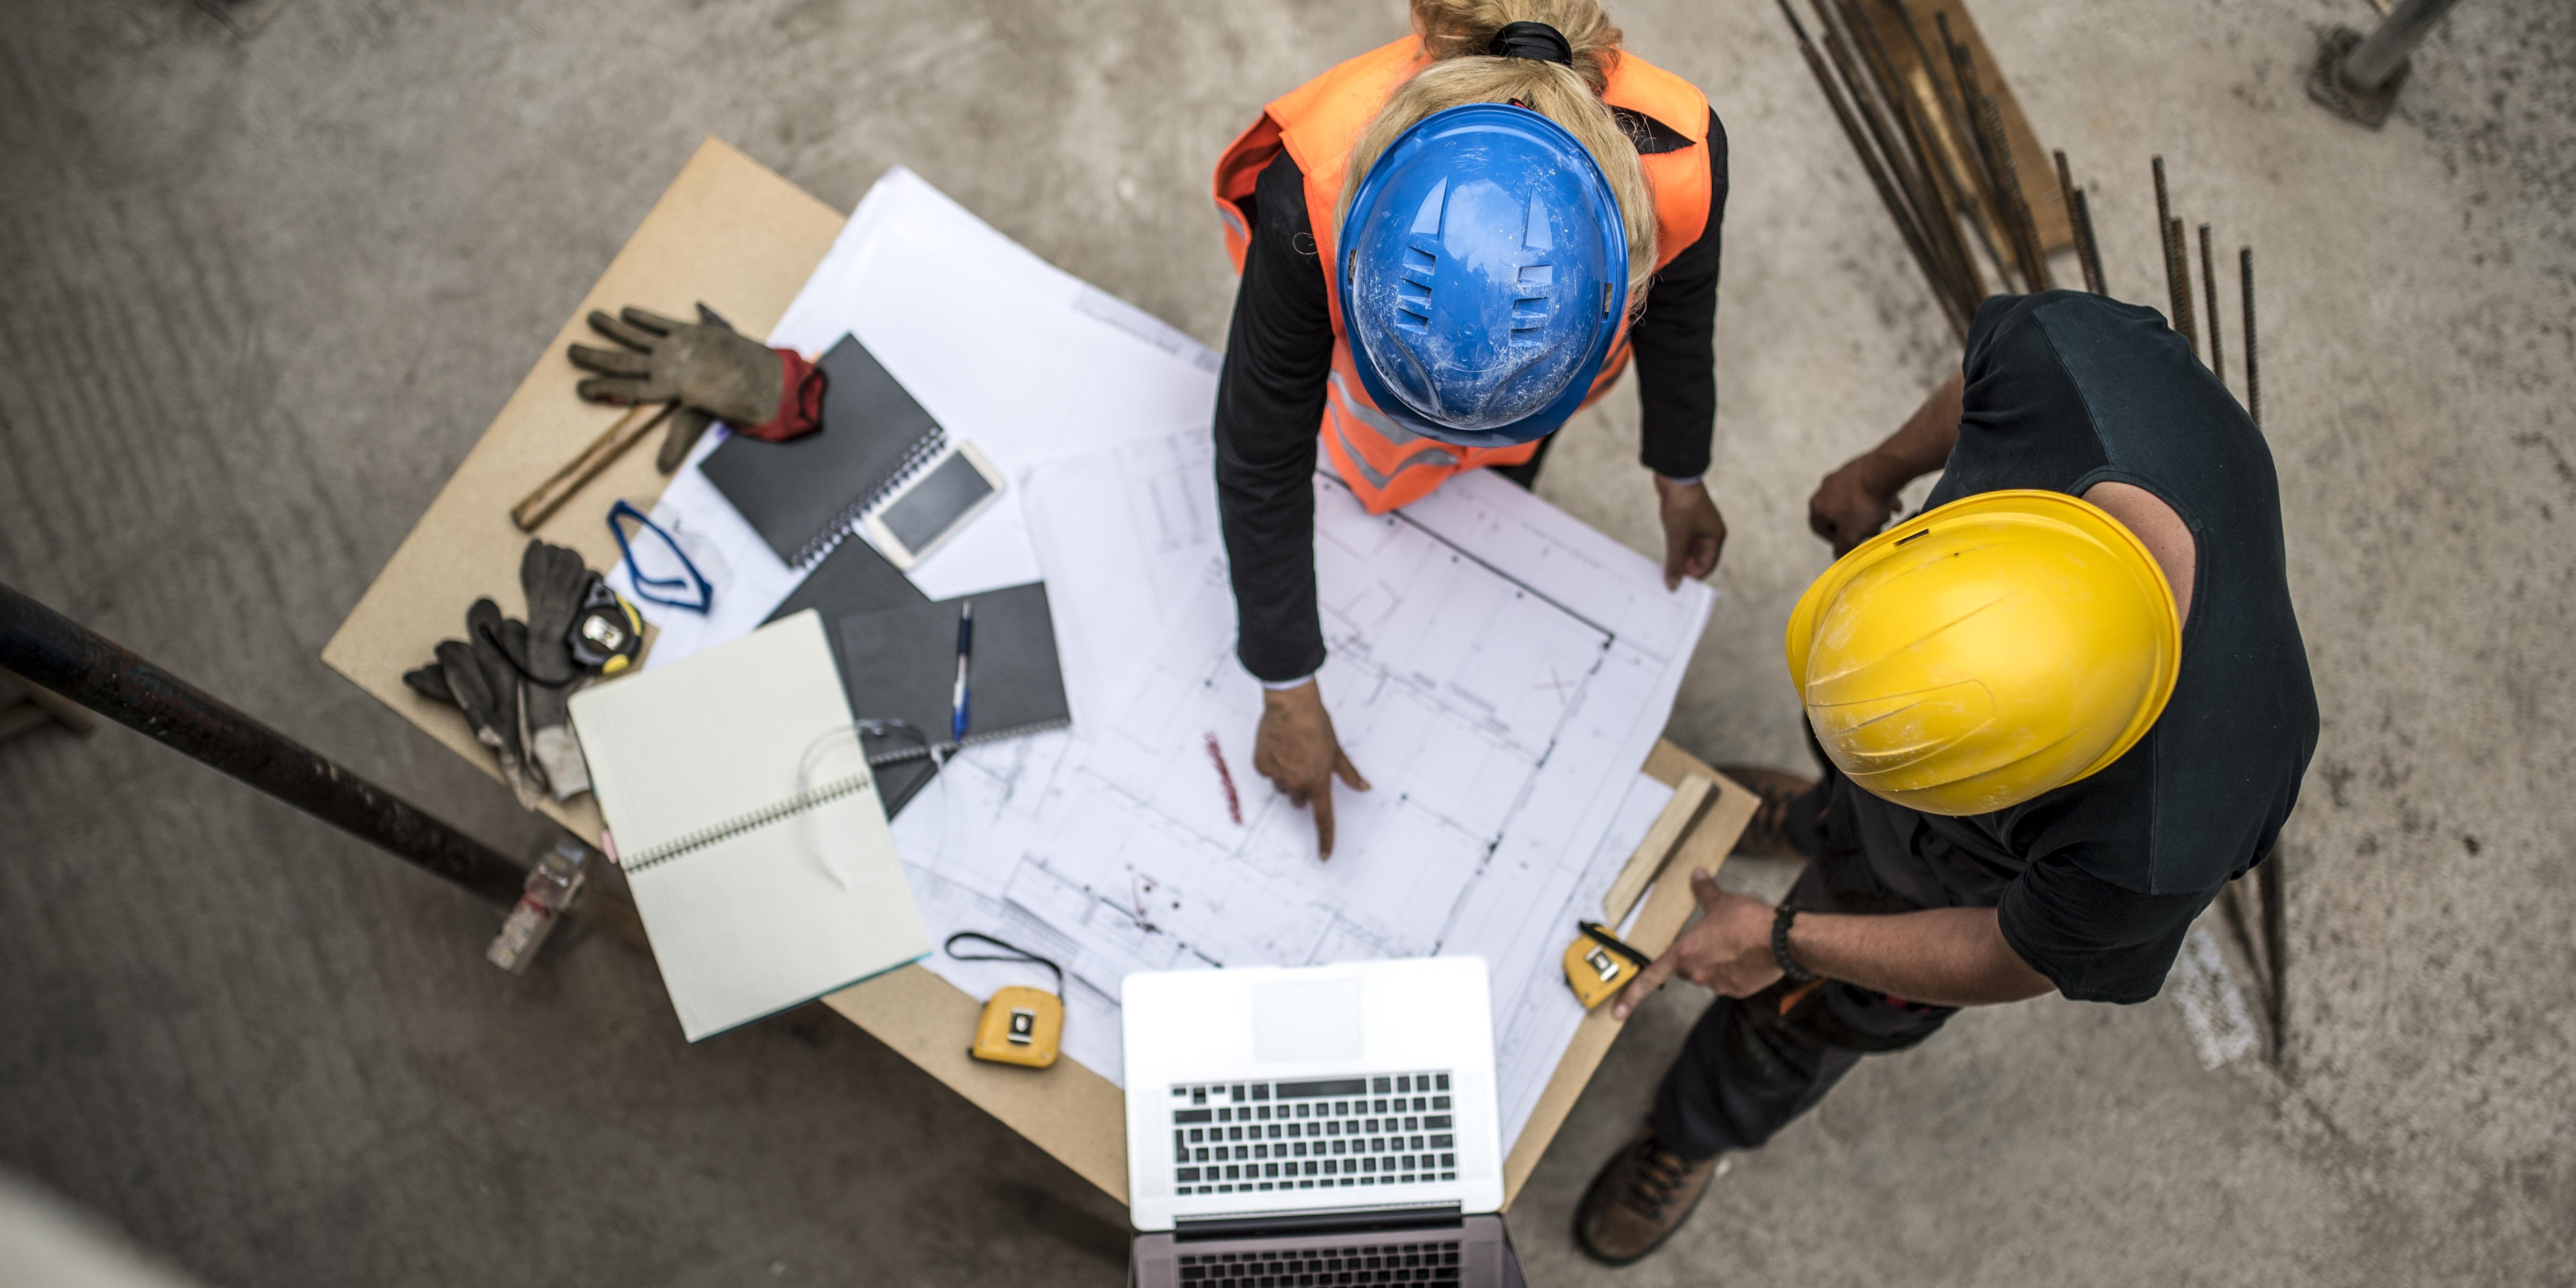 Two architects examining the blueprints on construction site